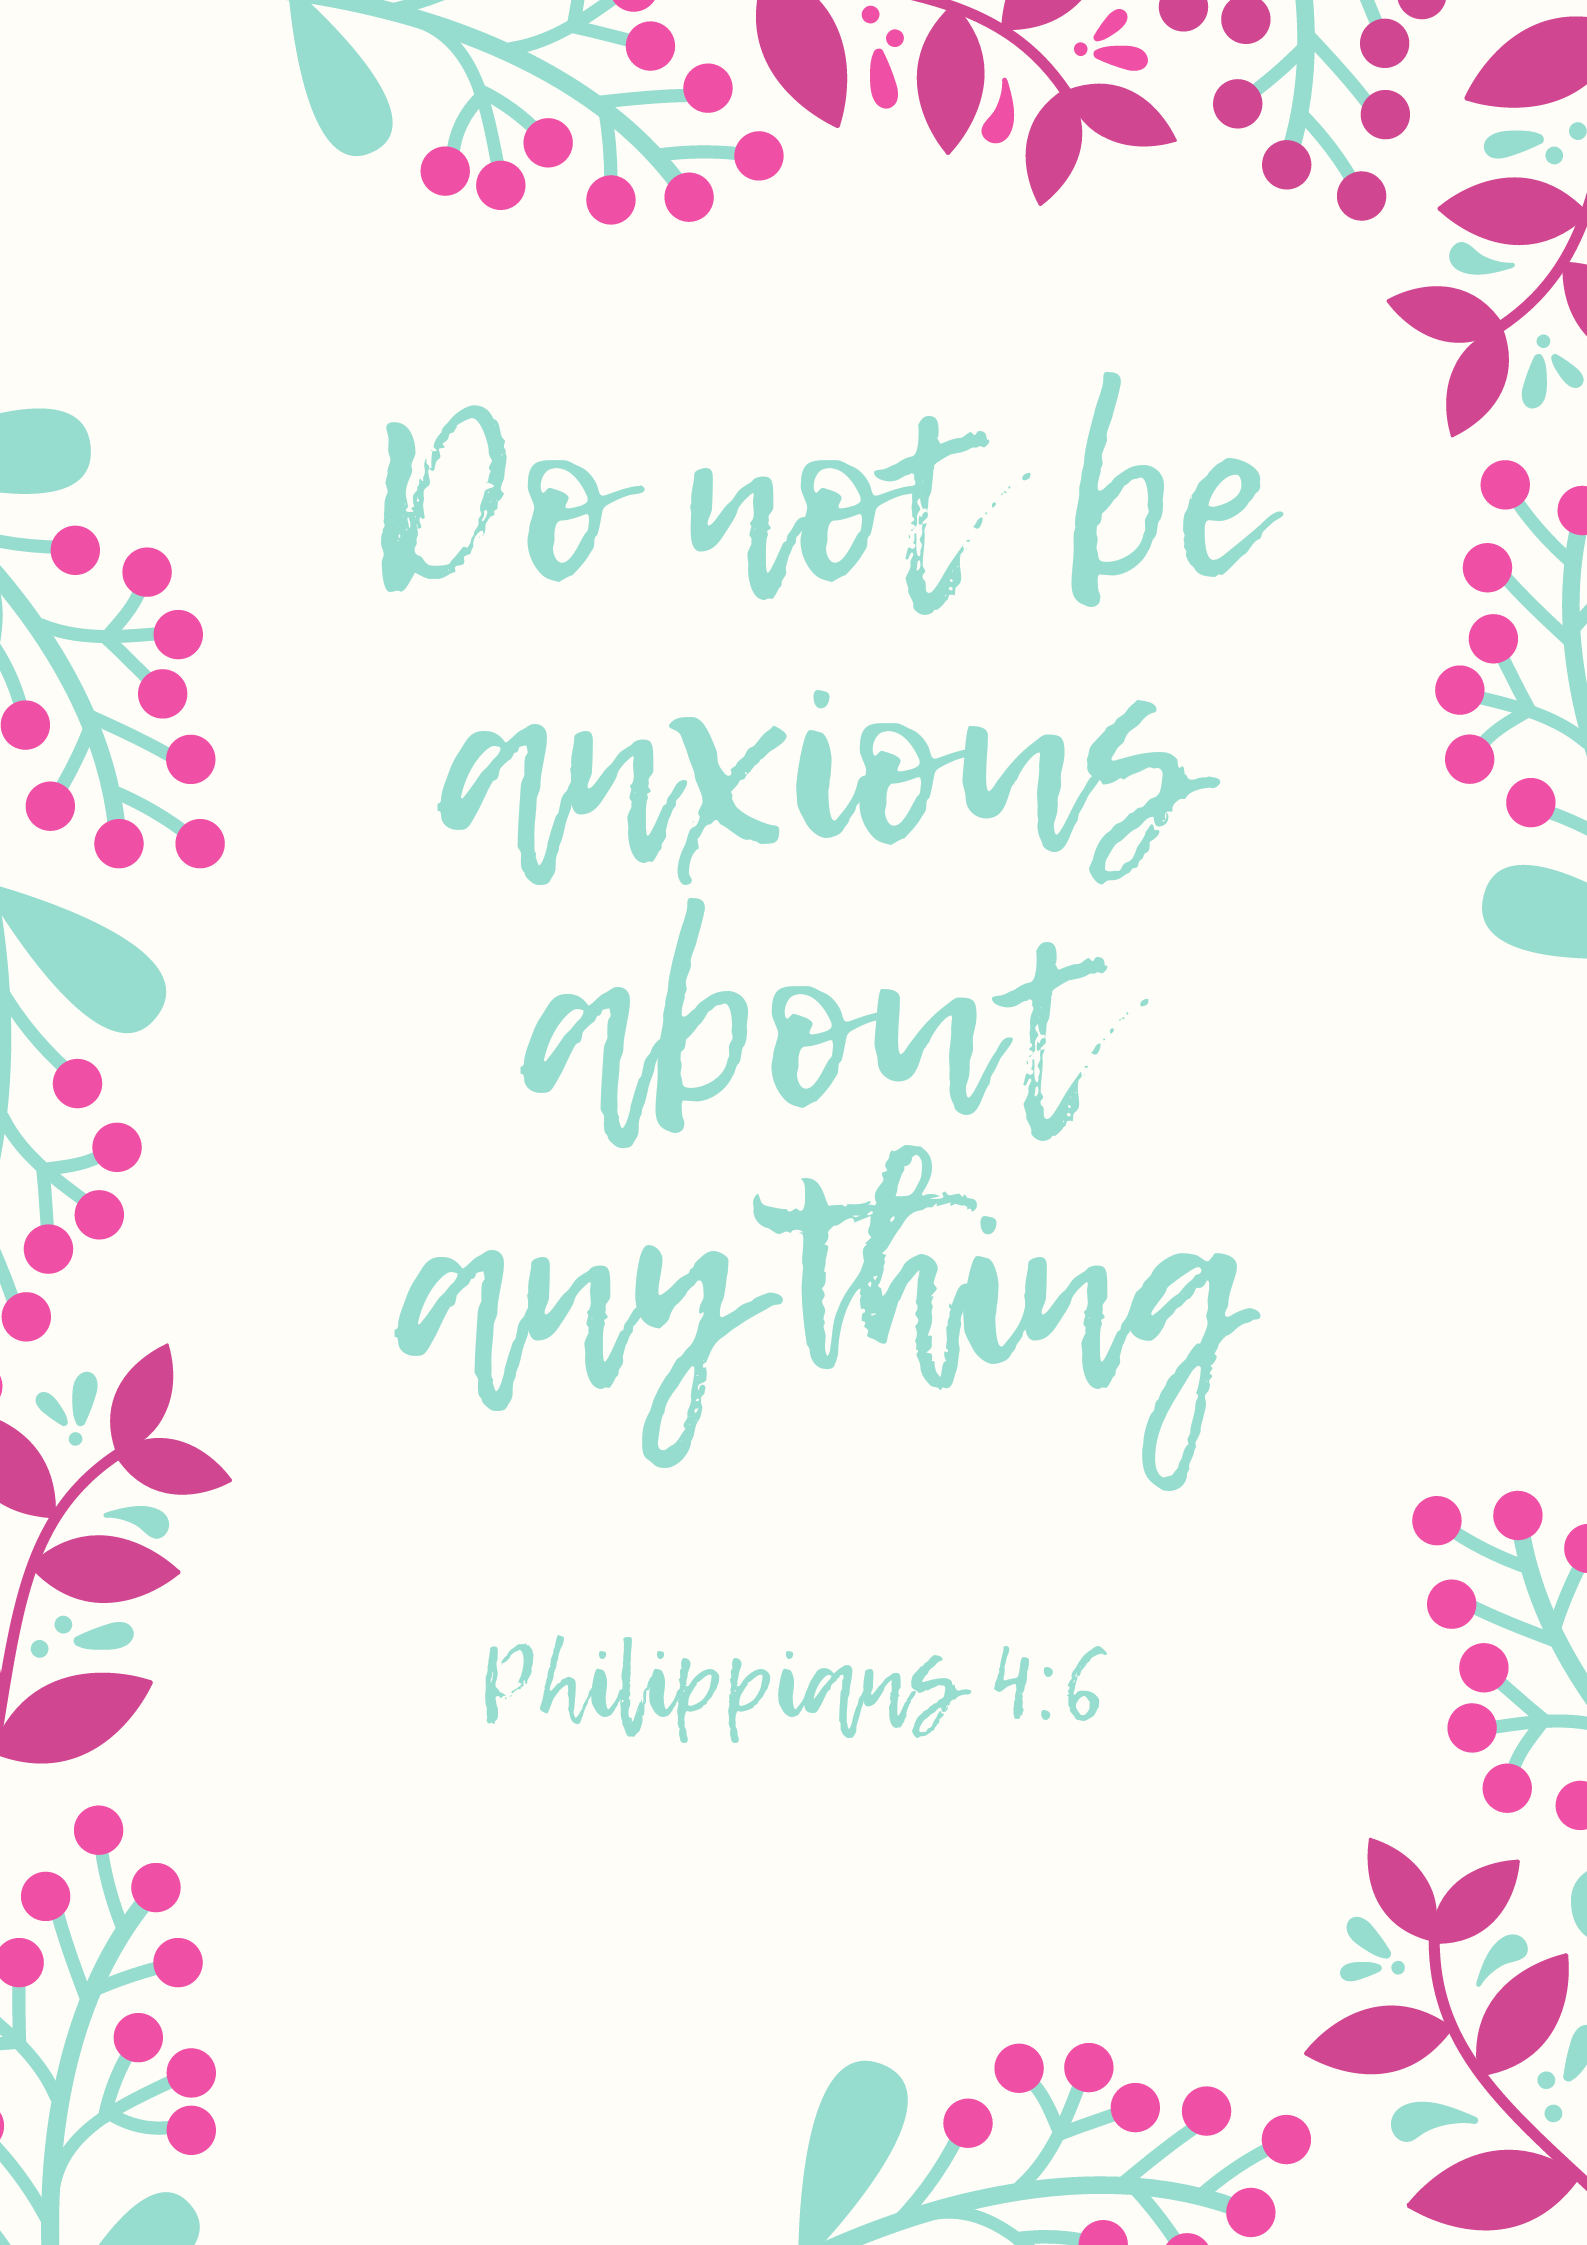 Anxiety is a feeling and it's very common in our nature. However, anxiety can be dangerous if it's not treated correctly. There are many options in the world like psychologist or psychiatrists many people look for help. Looking for help is the right thing to do, but we must seek guidance and help in the word of God. In the bible and in our relationship with God we can find the solution to this problem. Let's learn a little about how to replace anxiety with peace.